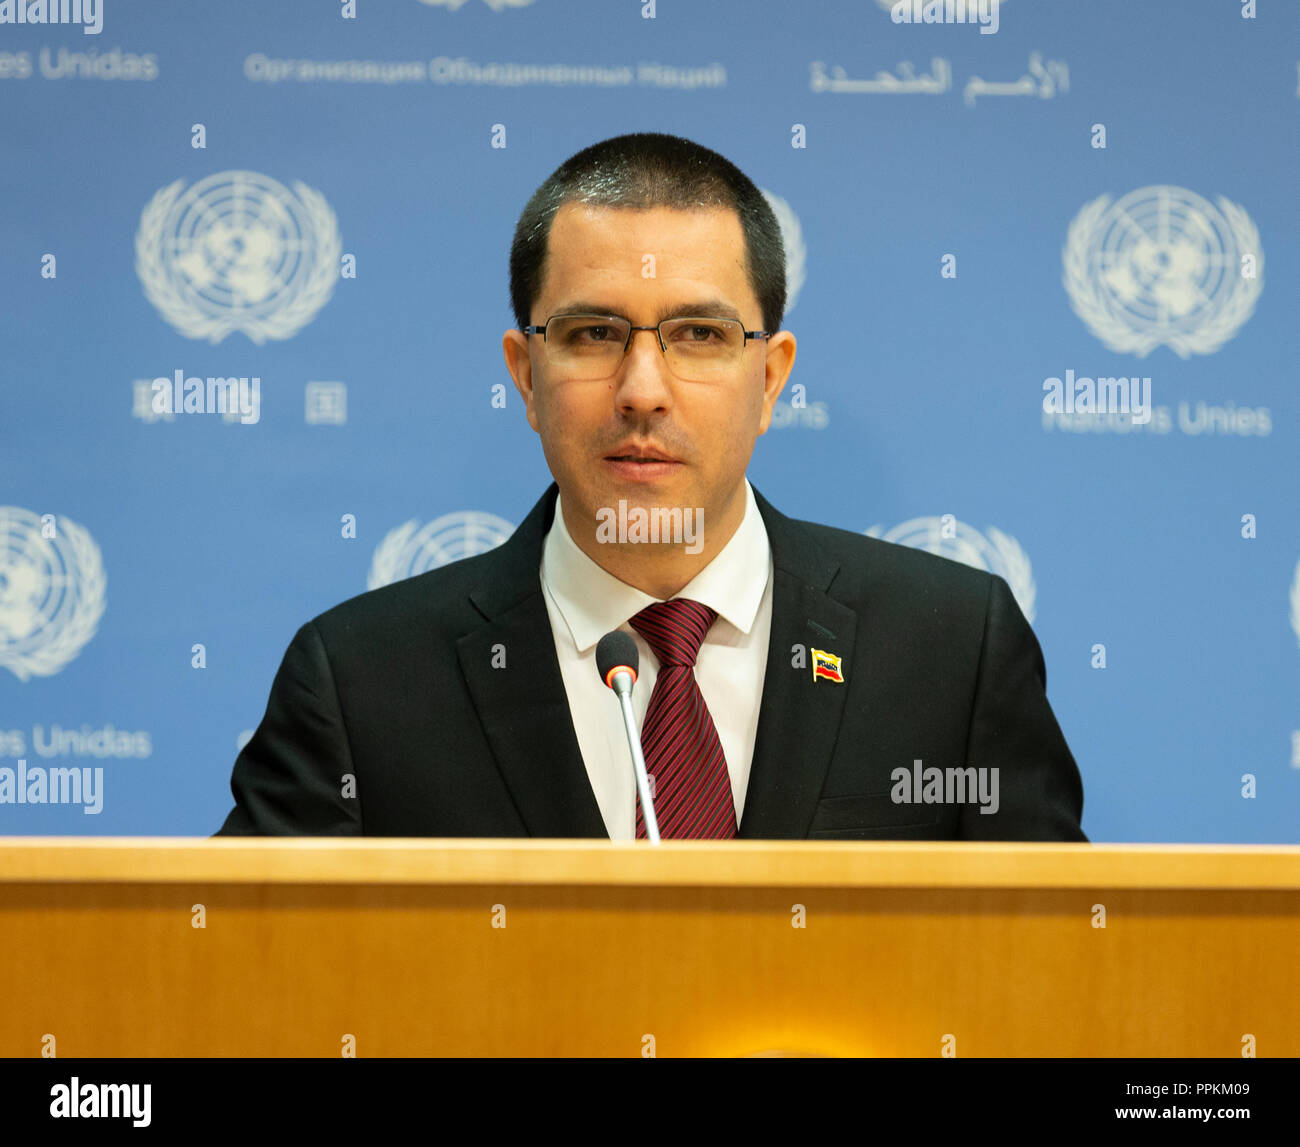 New York, United States. 25th Sep, 2018. Press briefing by Jorge Arreaza Minister for Foreign Affairs of the Bolivarian Republic of Venezuela at United Nations Headquarters. Credit: Lev Radin/Pacific Press/Alamy Live News - Stock Image